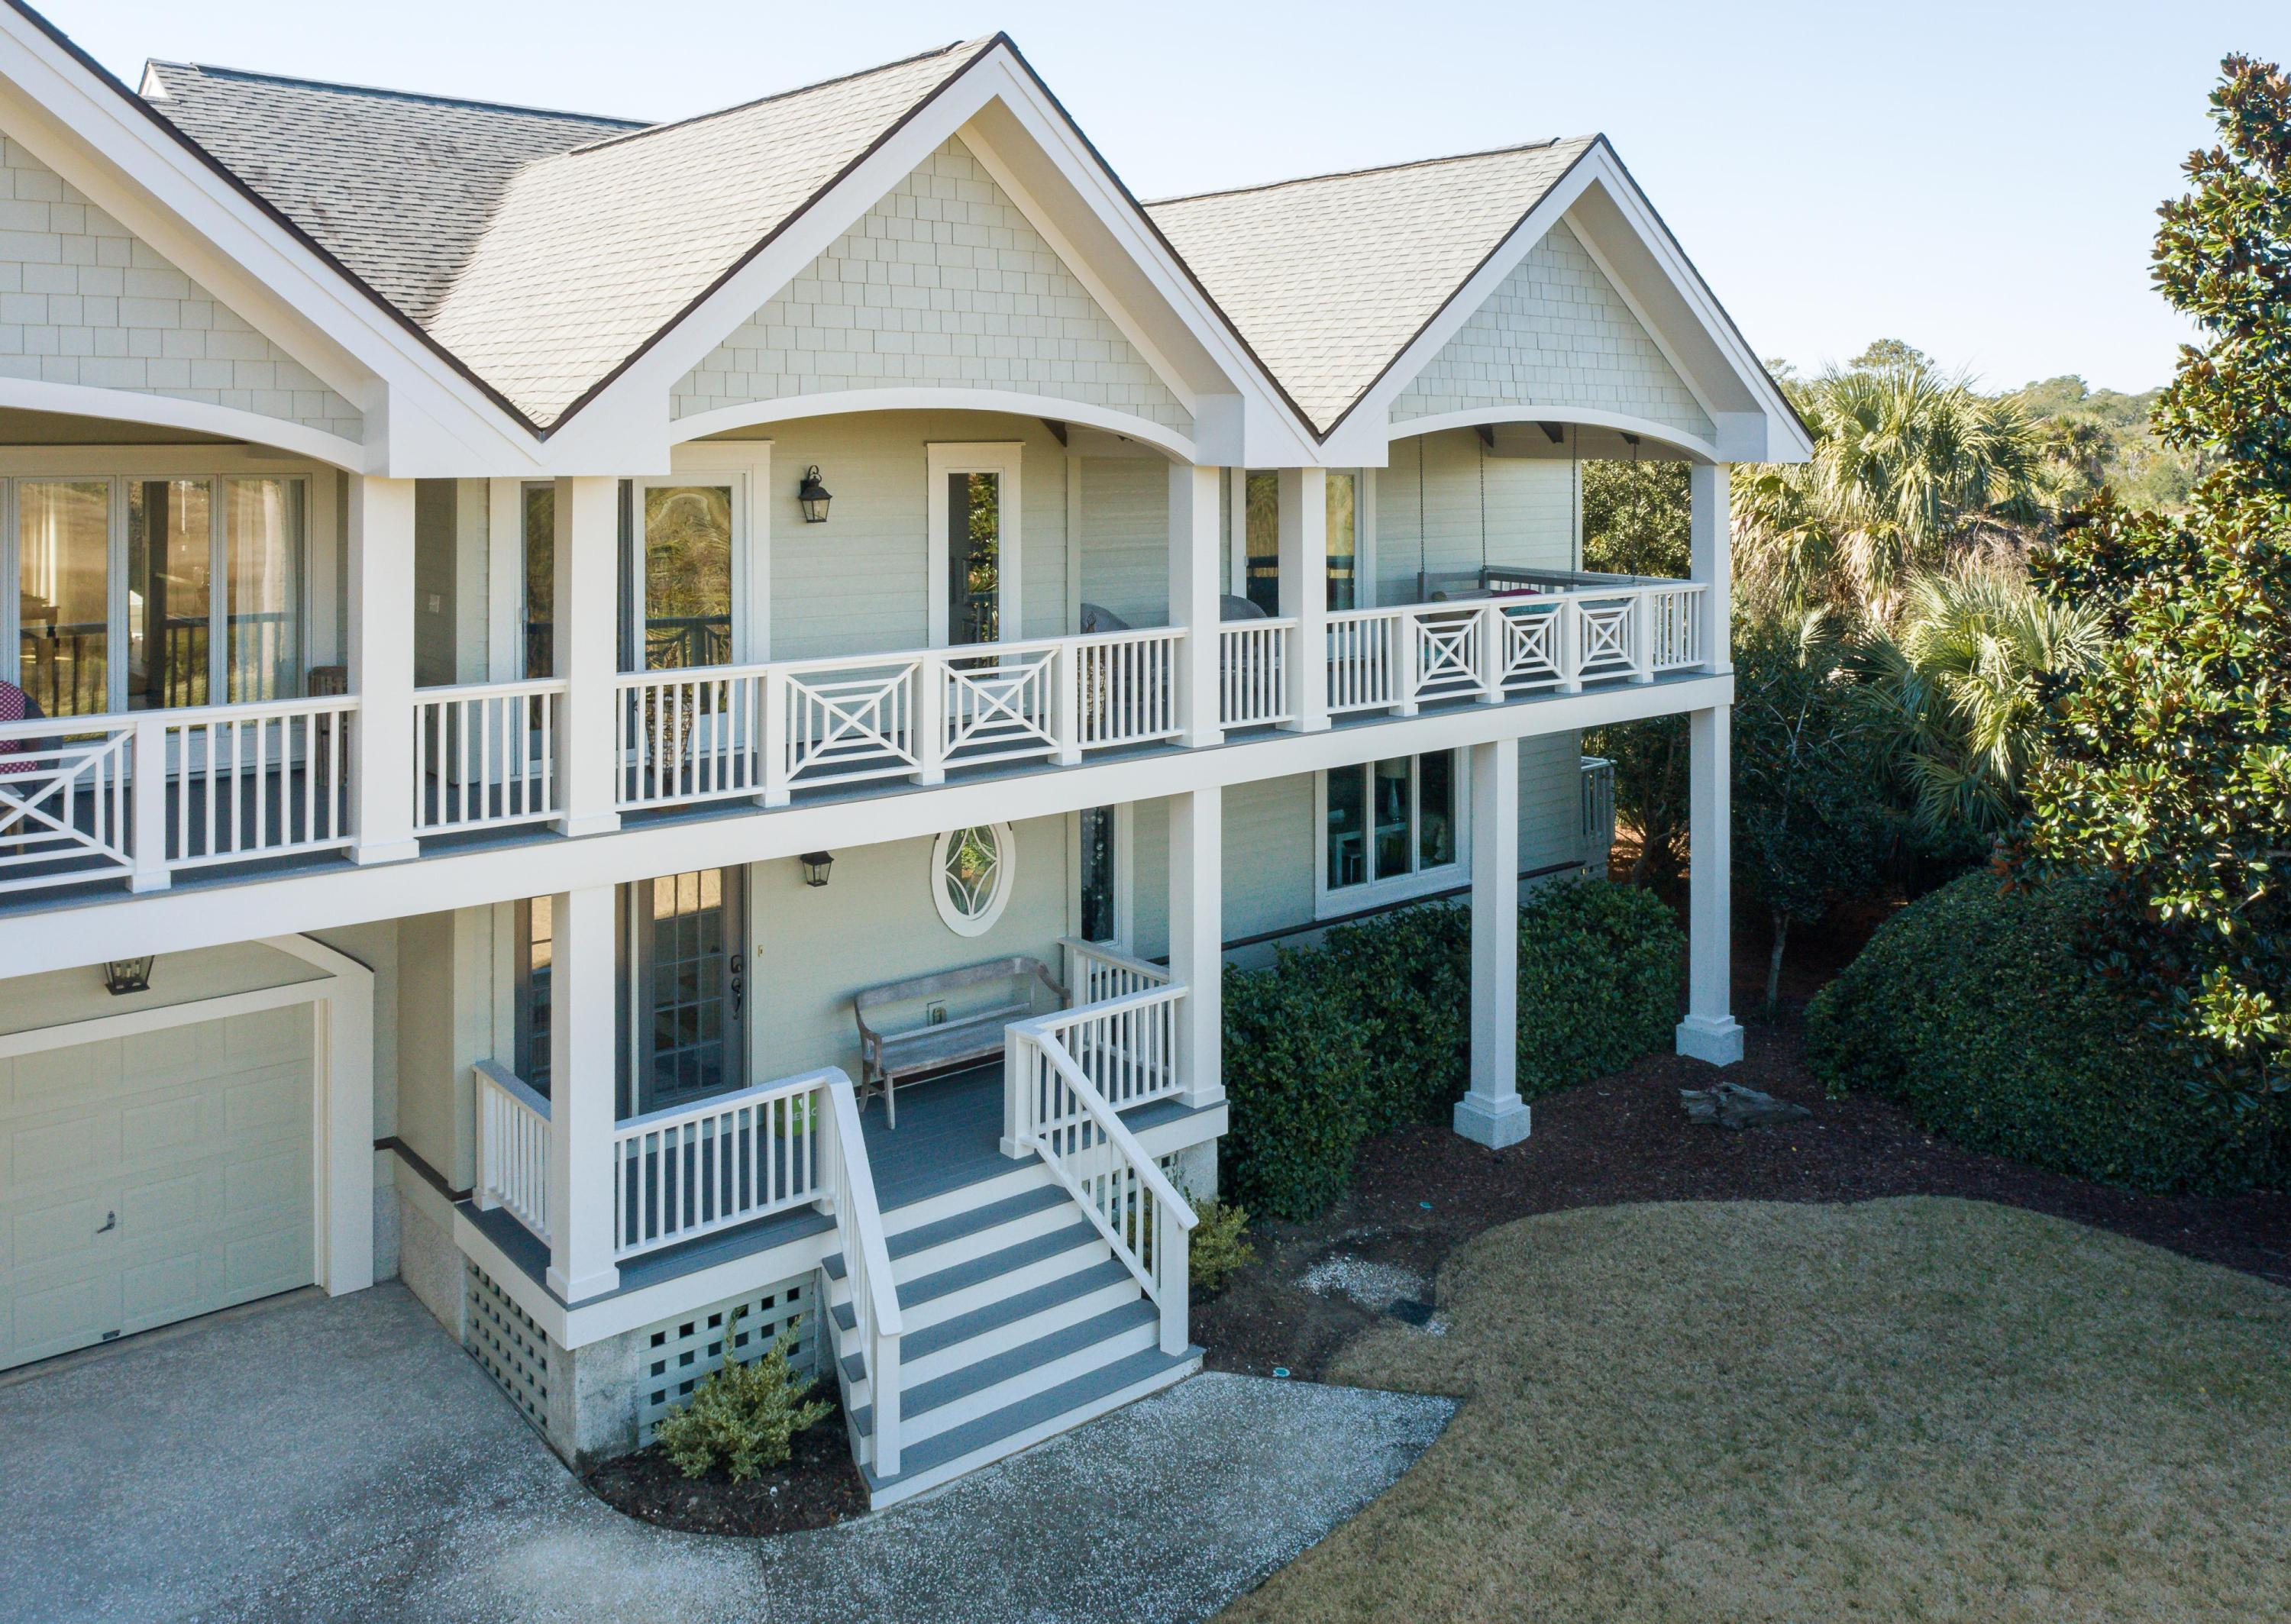 Seabrook Island Homes For Sale - 2335 Oyster Catcher, Seabrook Island, SC - 19